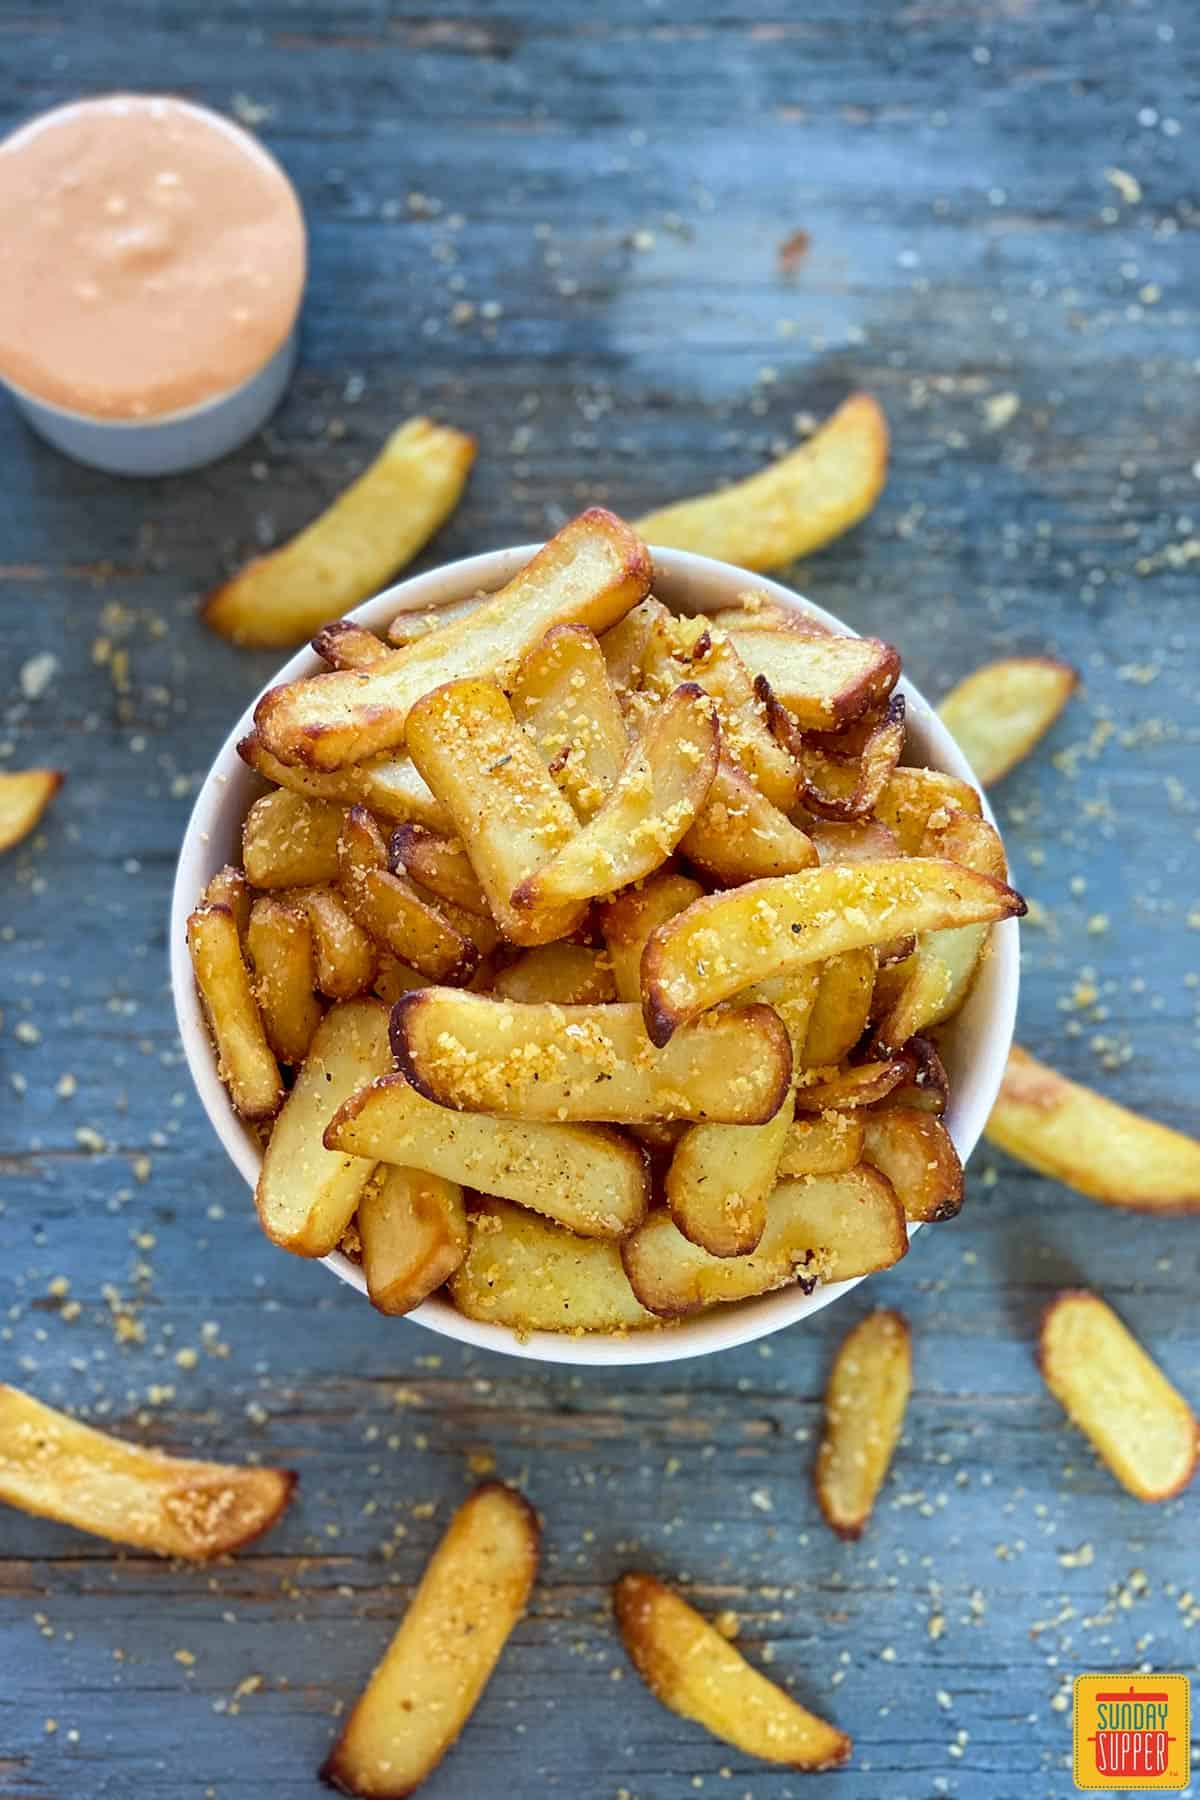 Fries scattered around a bowl of french fries